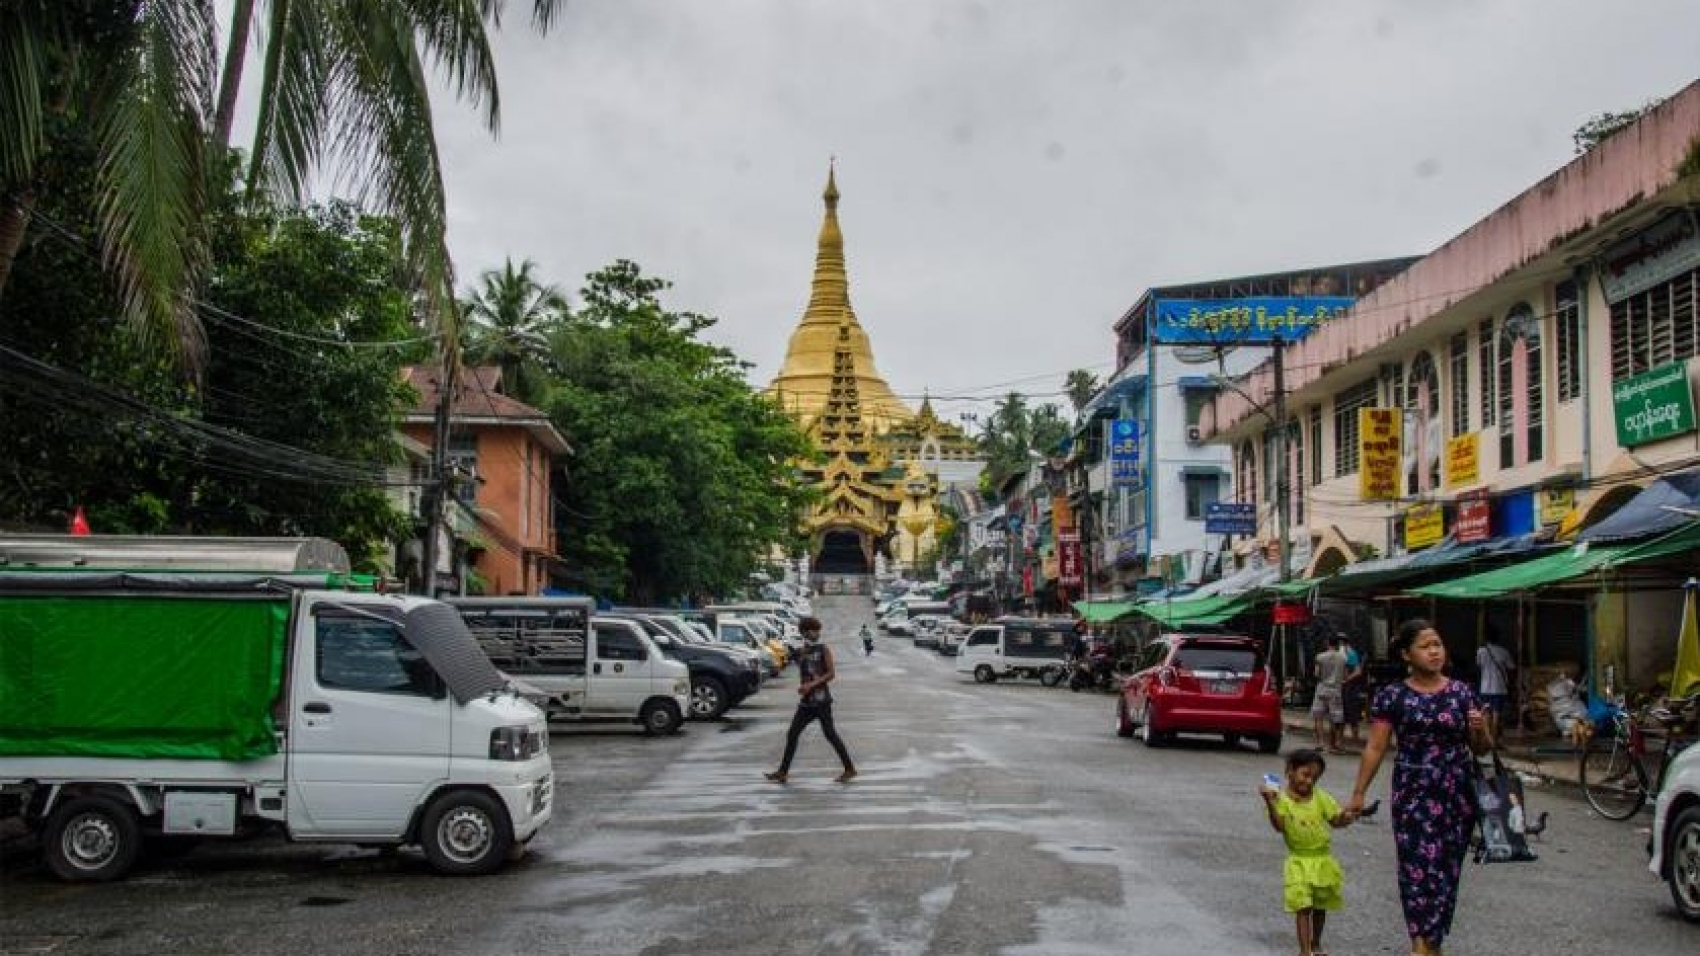 shwedagon-ygn-road-ahh